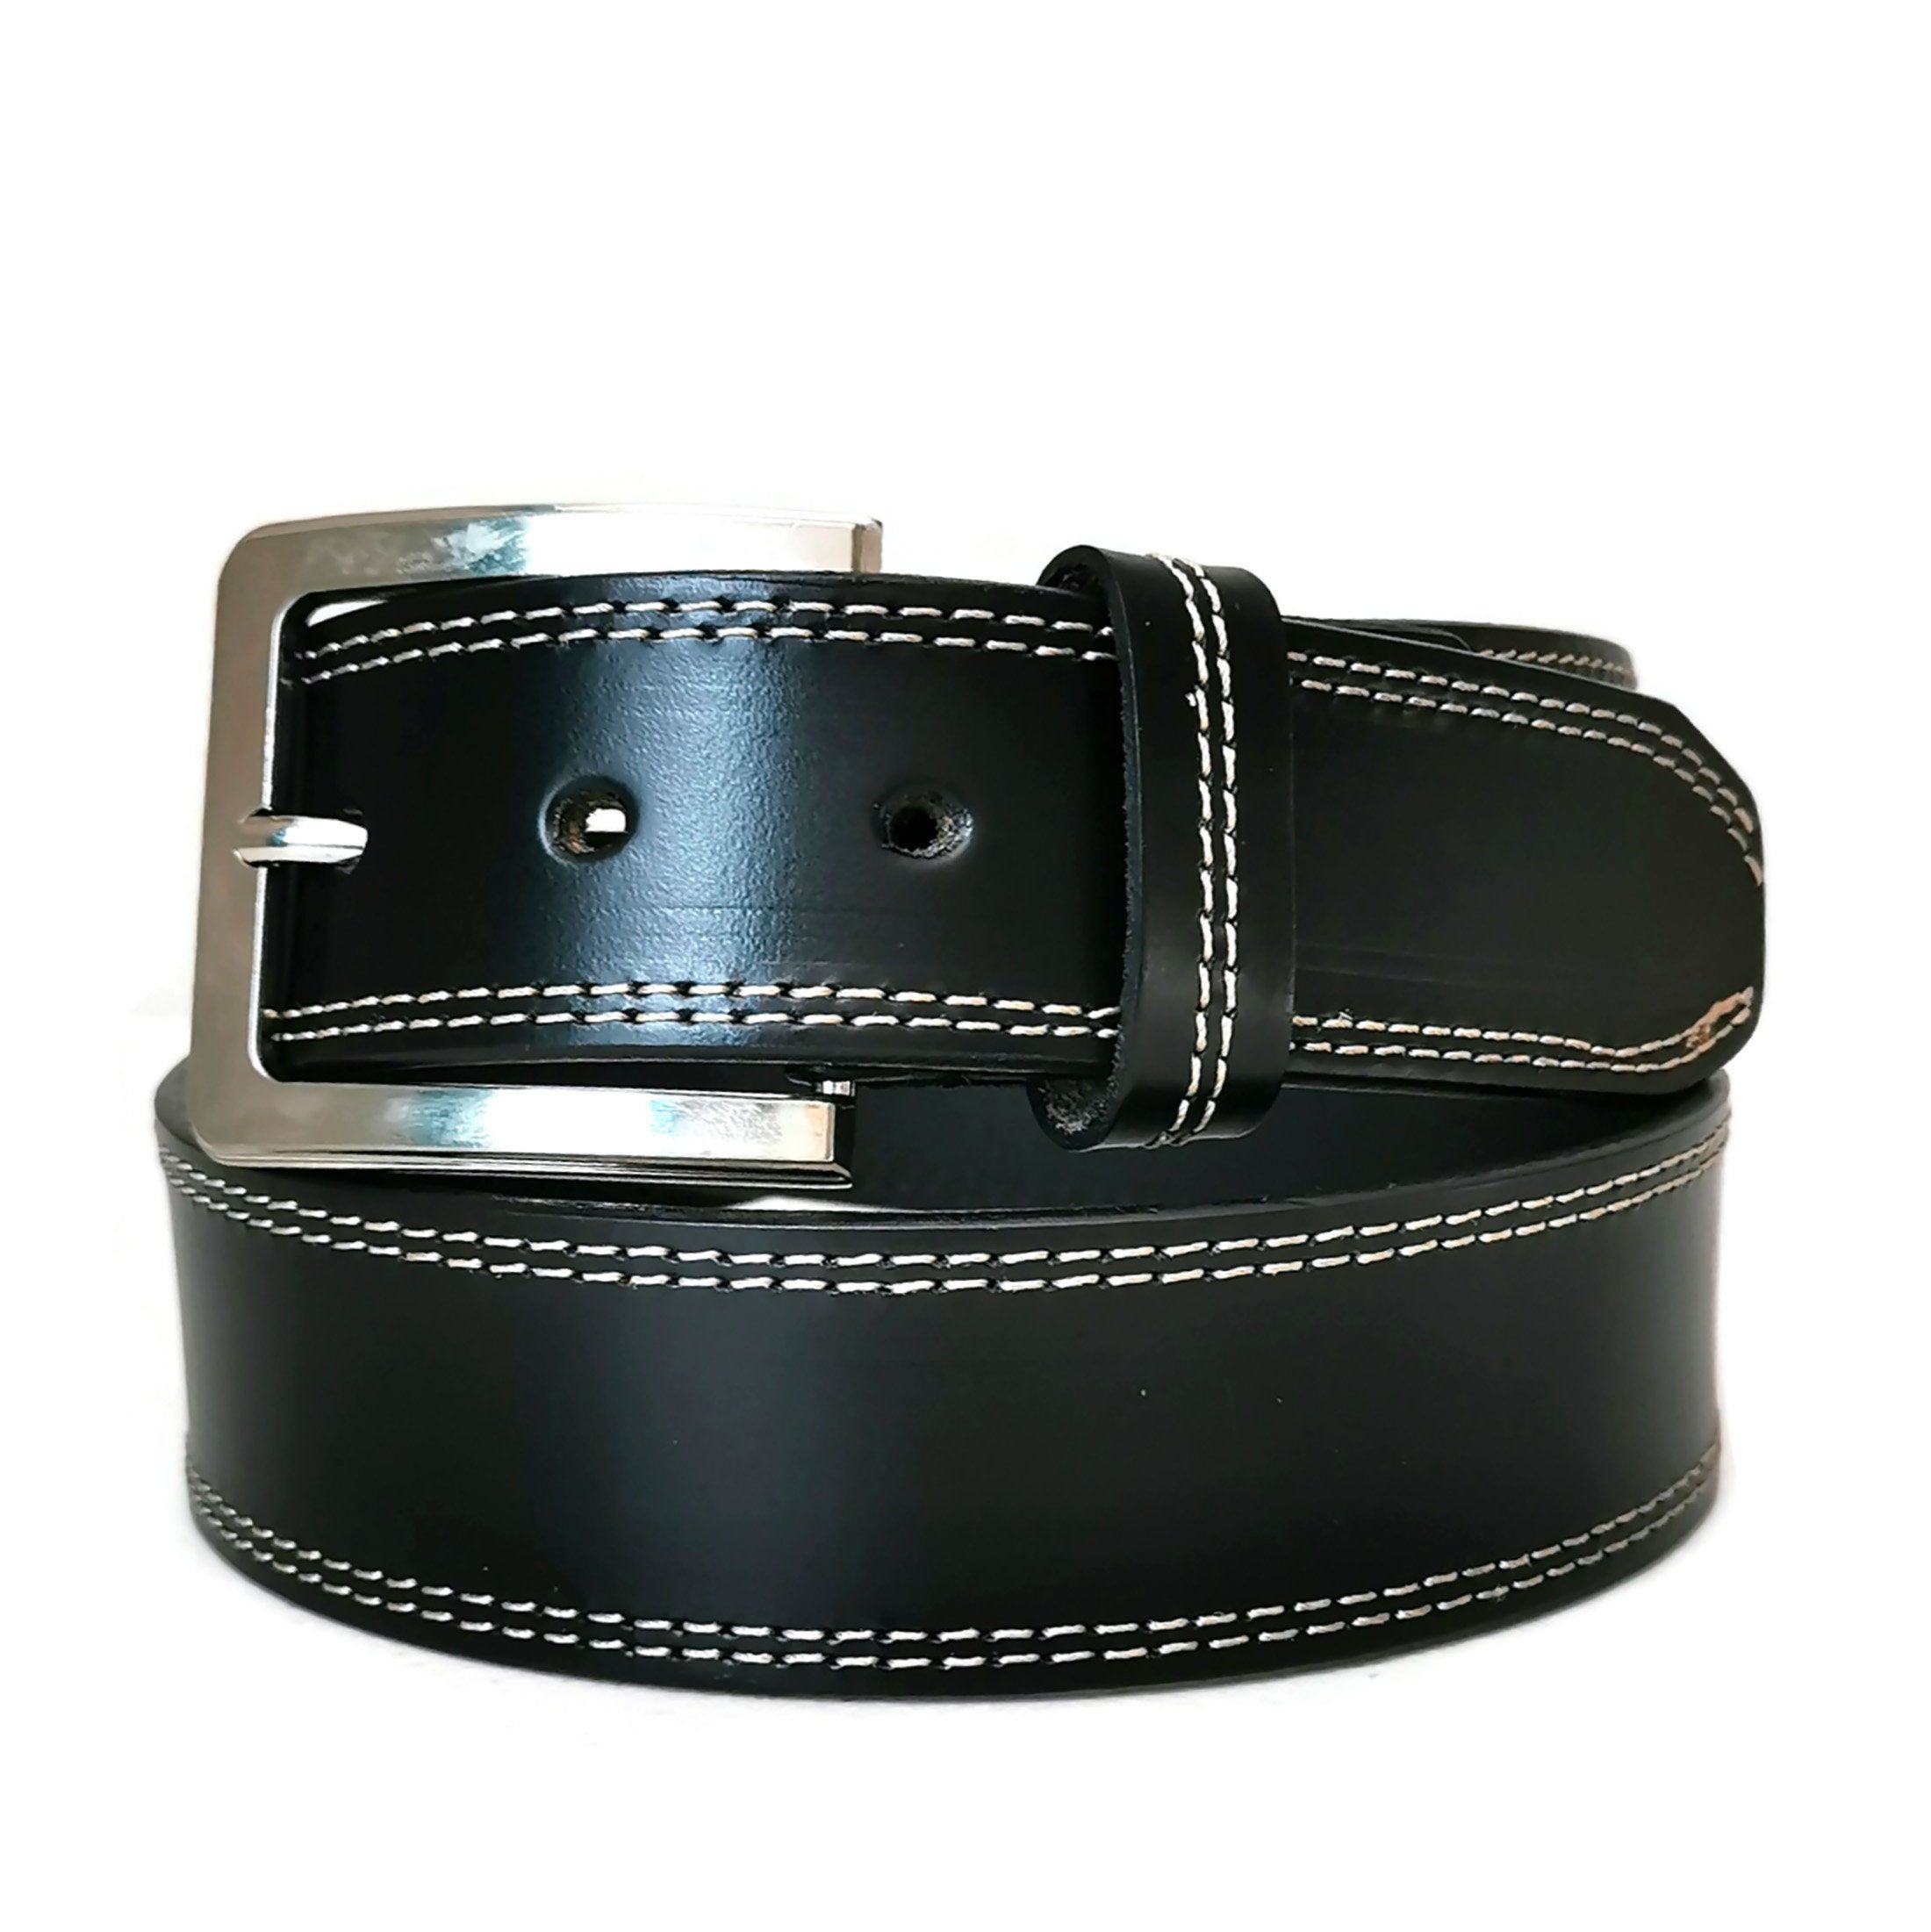 With Removable Buckle for Jeans Black Handmade MEN/'S BELT Casual Minimalist LEATHER Belt